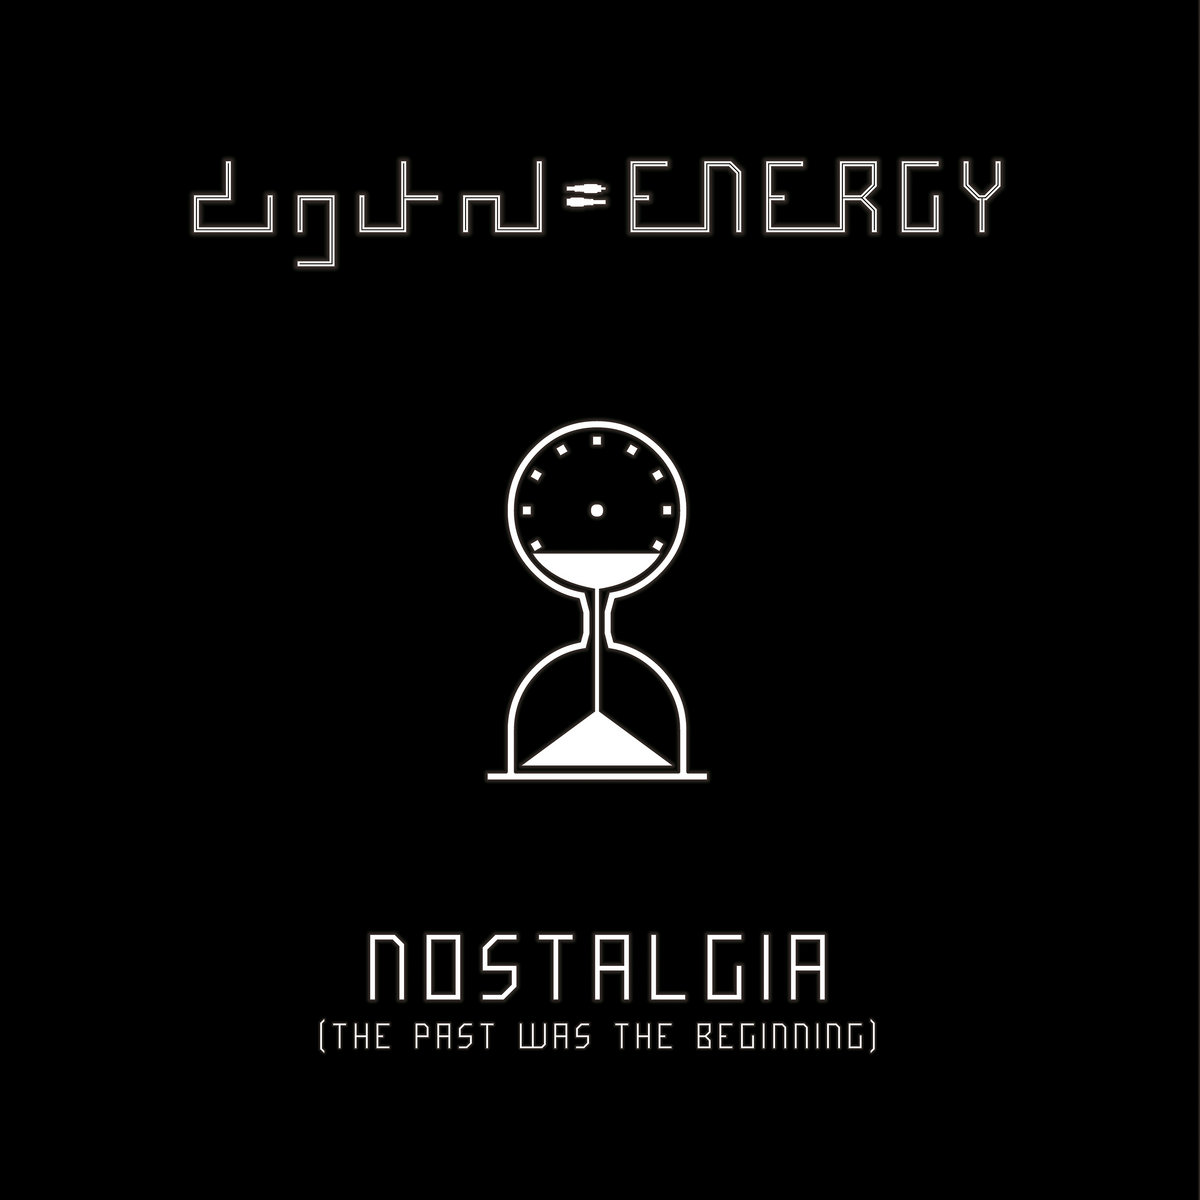 Digital Energy - Nostalgia (The Past Was The Beginning) (2020) [FLAC] Download